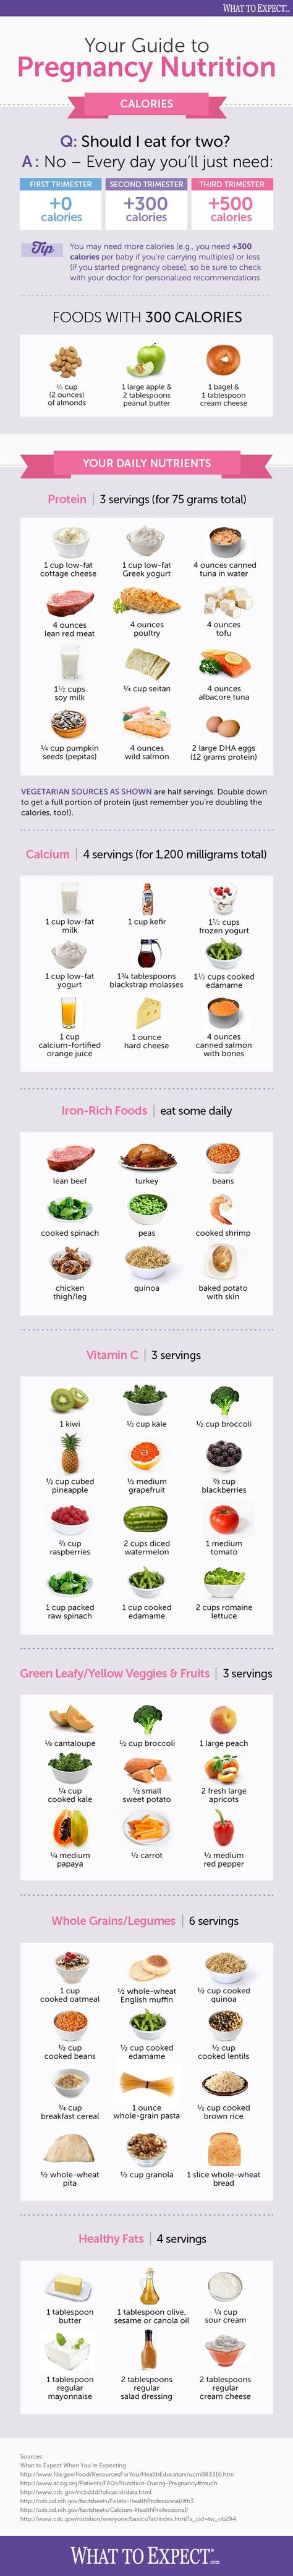 An easy-to-read and share infographic offers the basics of pregnancy nutrition, from calories to best foods to eat.: